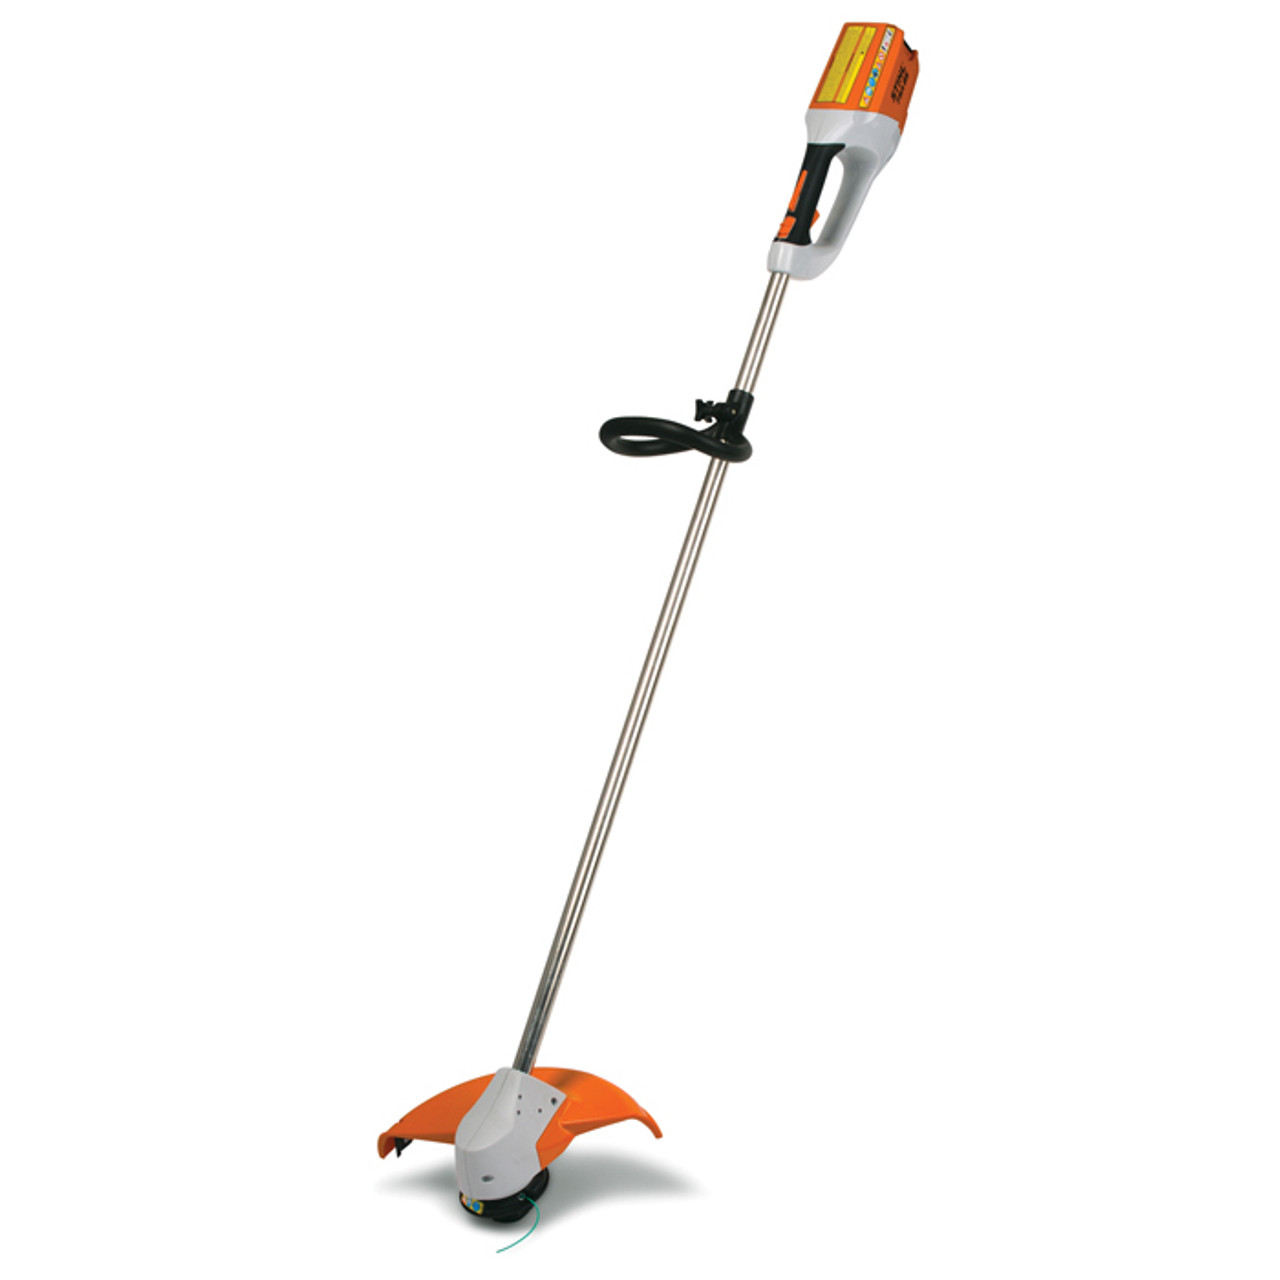 STIHL FSA 85 Battery-Powered String Trimmer (Battery & Charger Not Included) Image